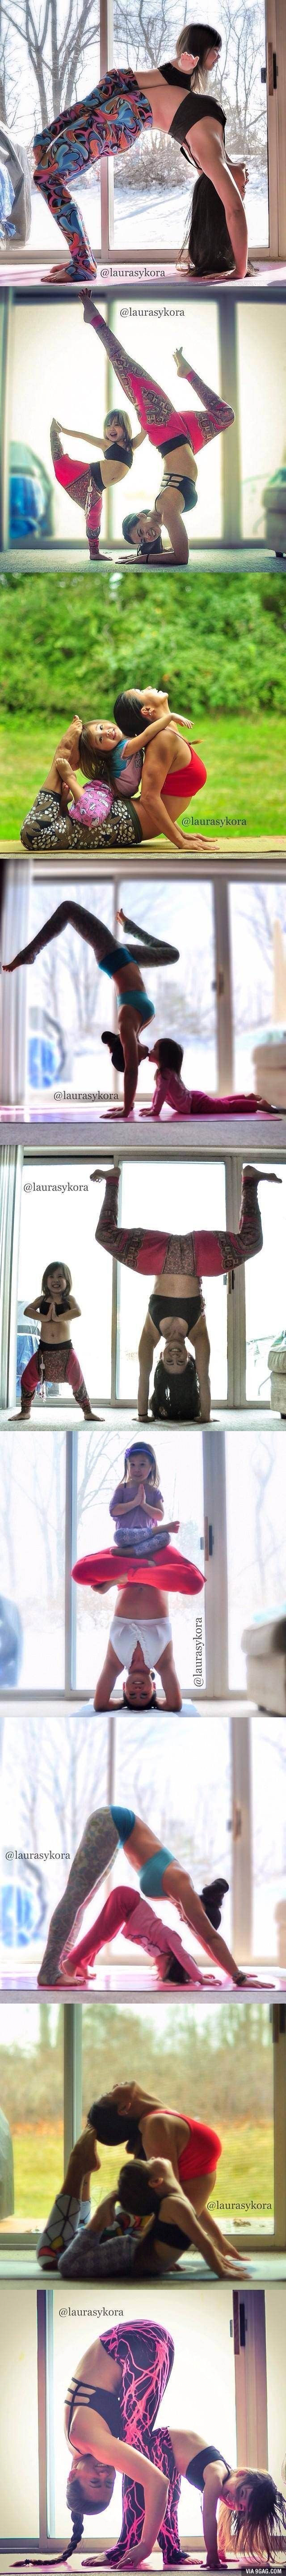 Absolutely adorable way to spread yoga to the youngins!